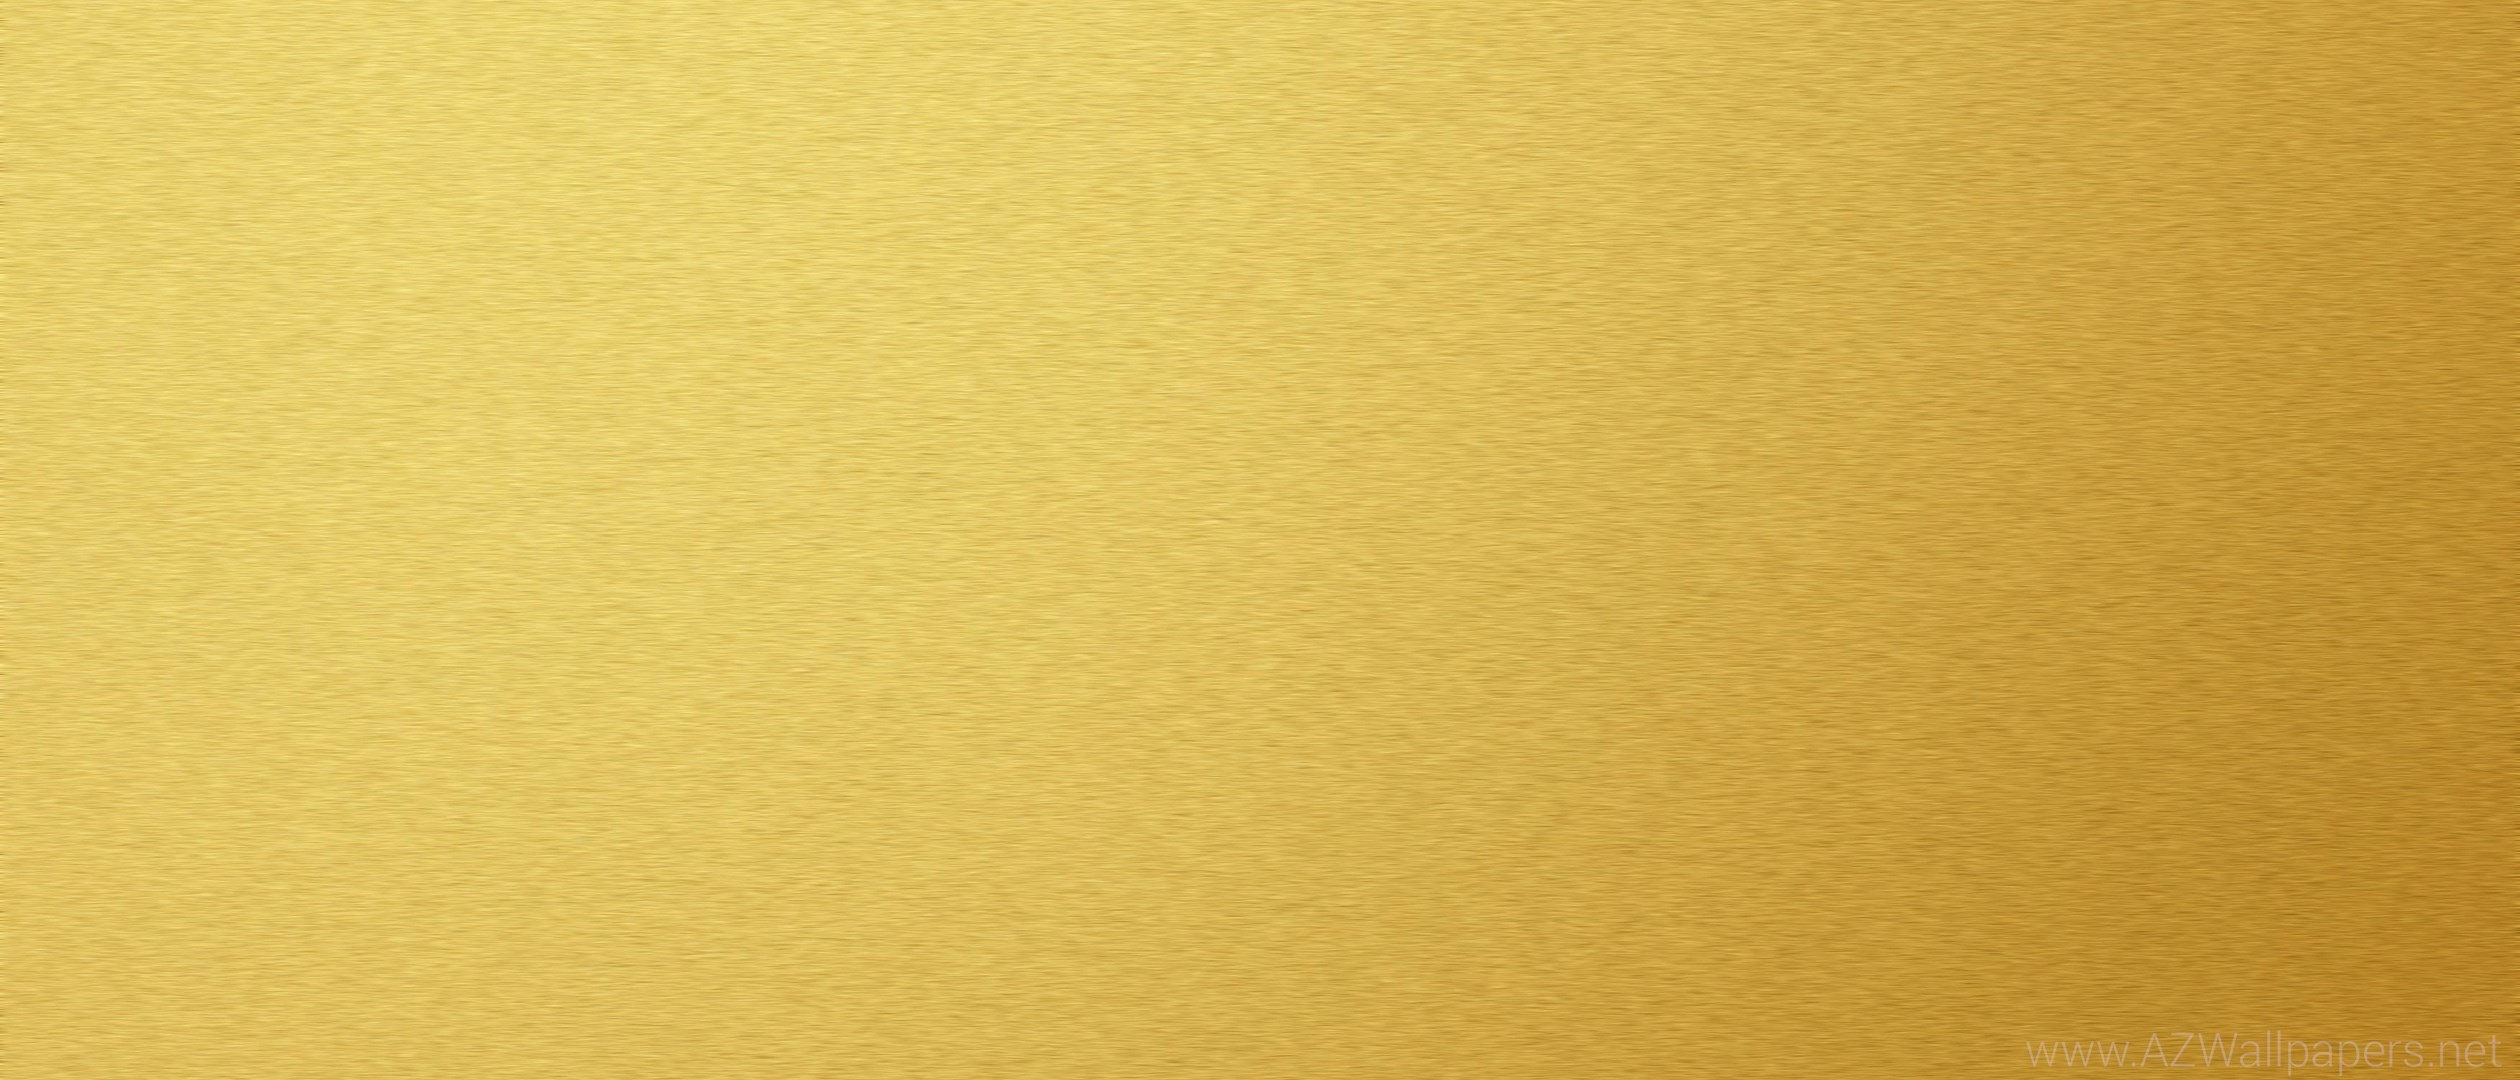 Gold Color Background ·①